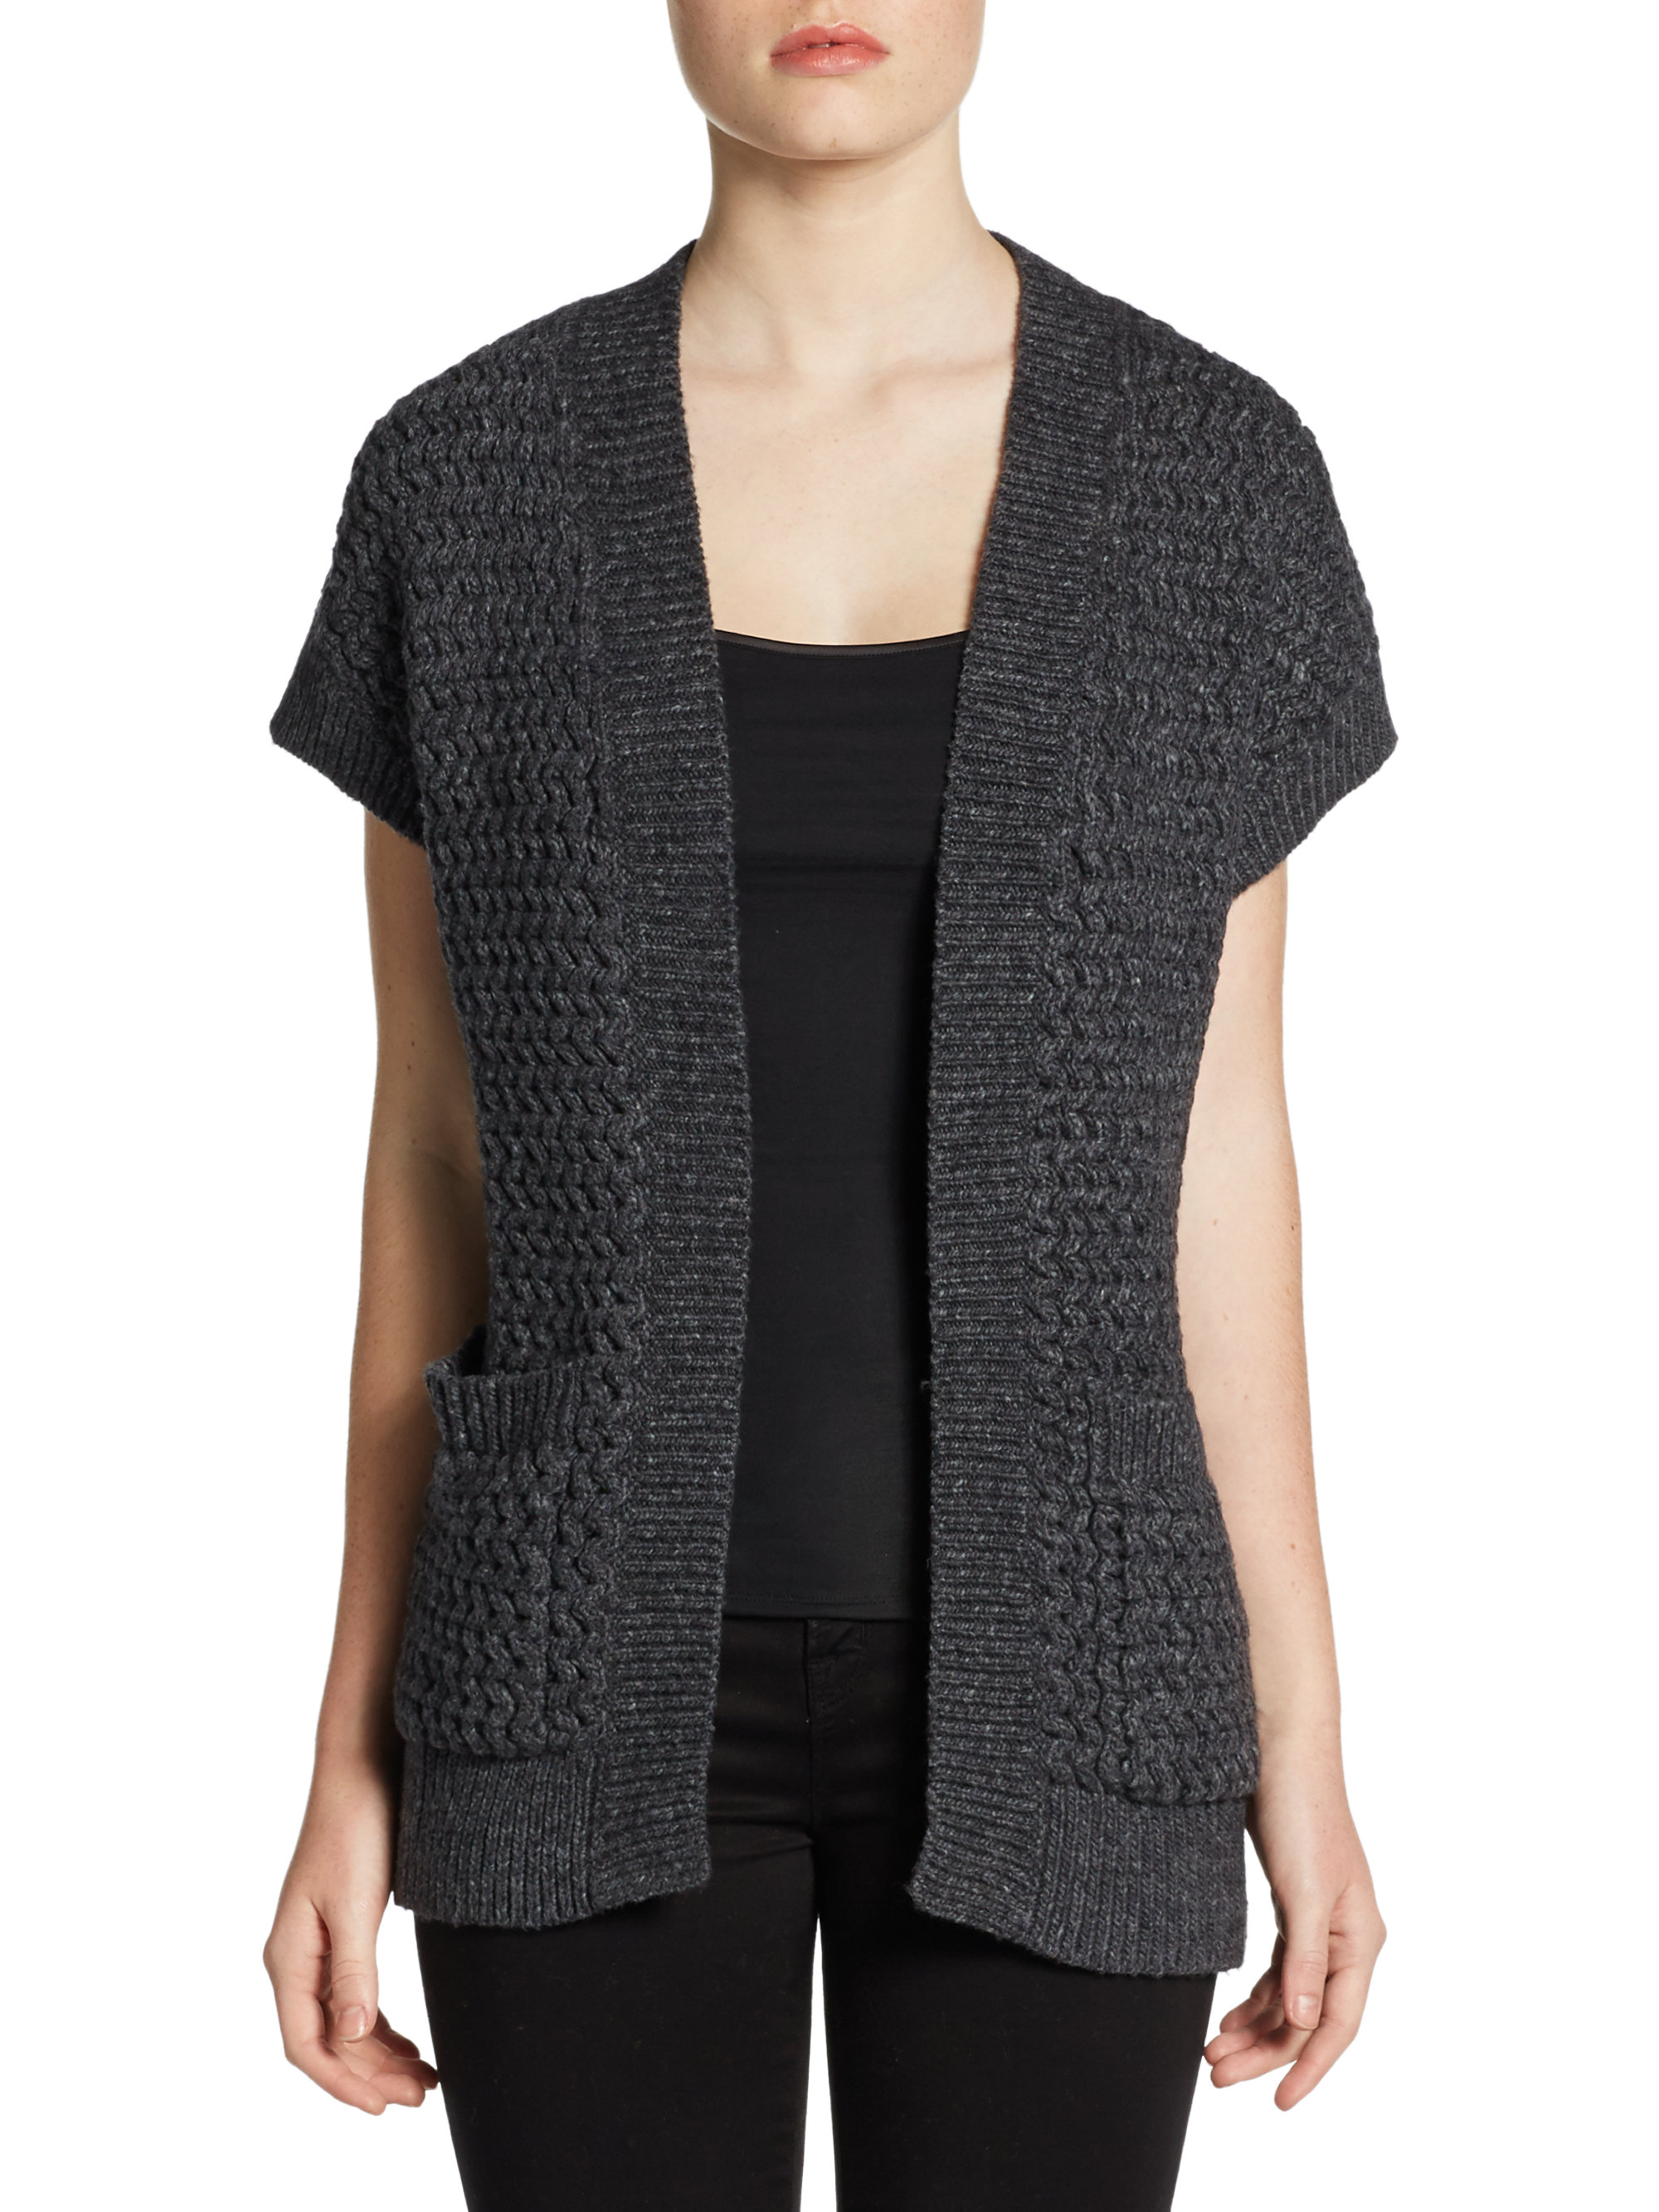 Lafayette 148 new york Short Sleeve Knit Cardigan in Gray | Lyst